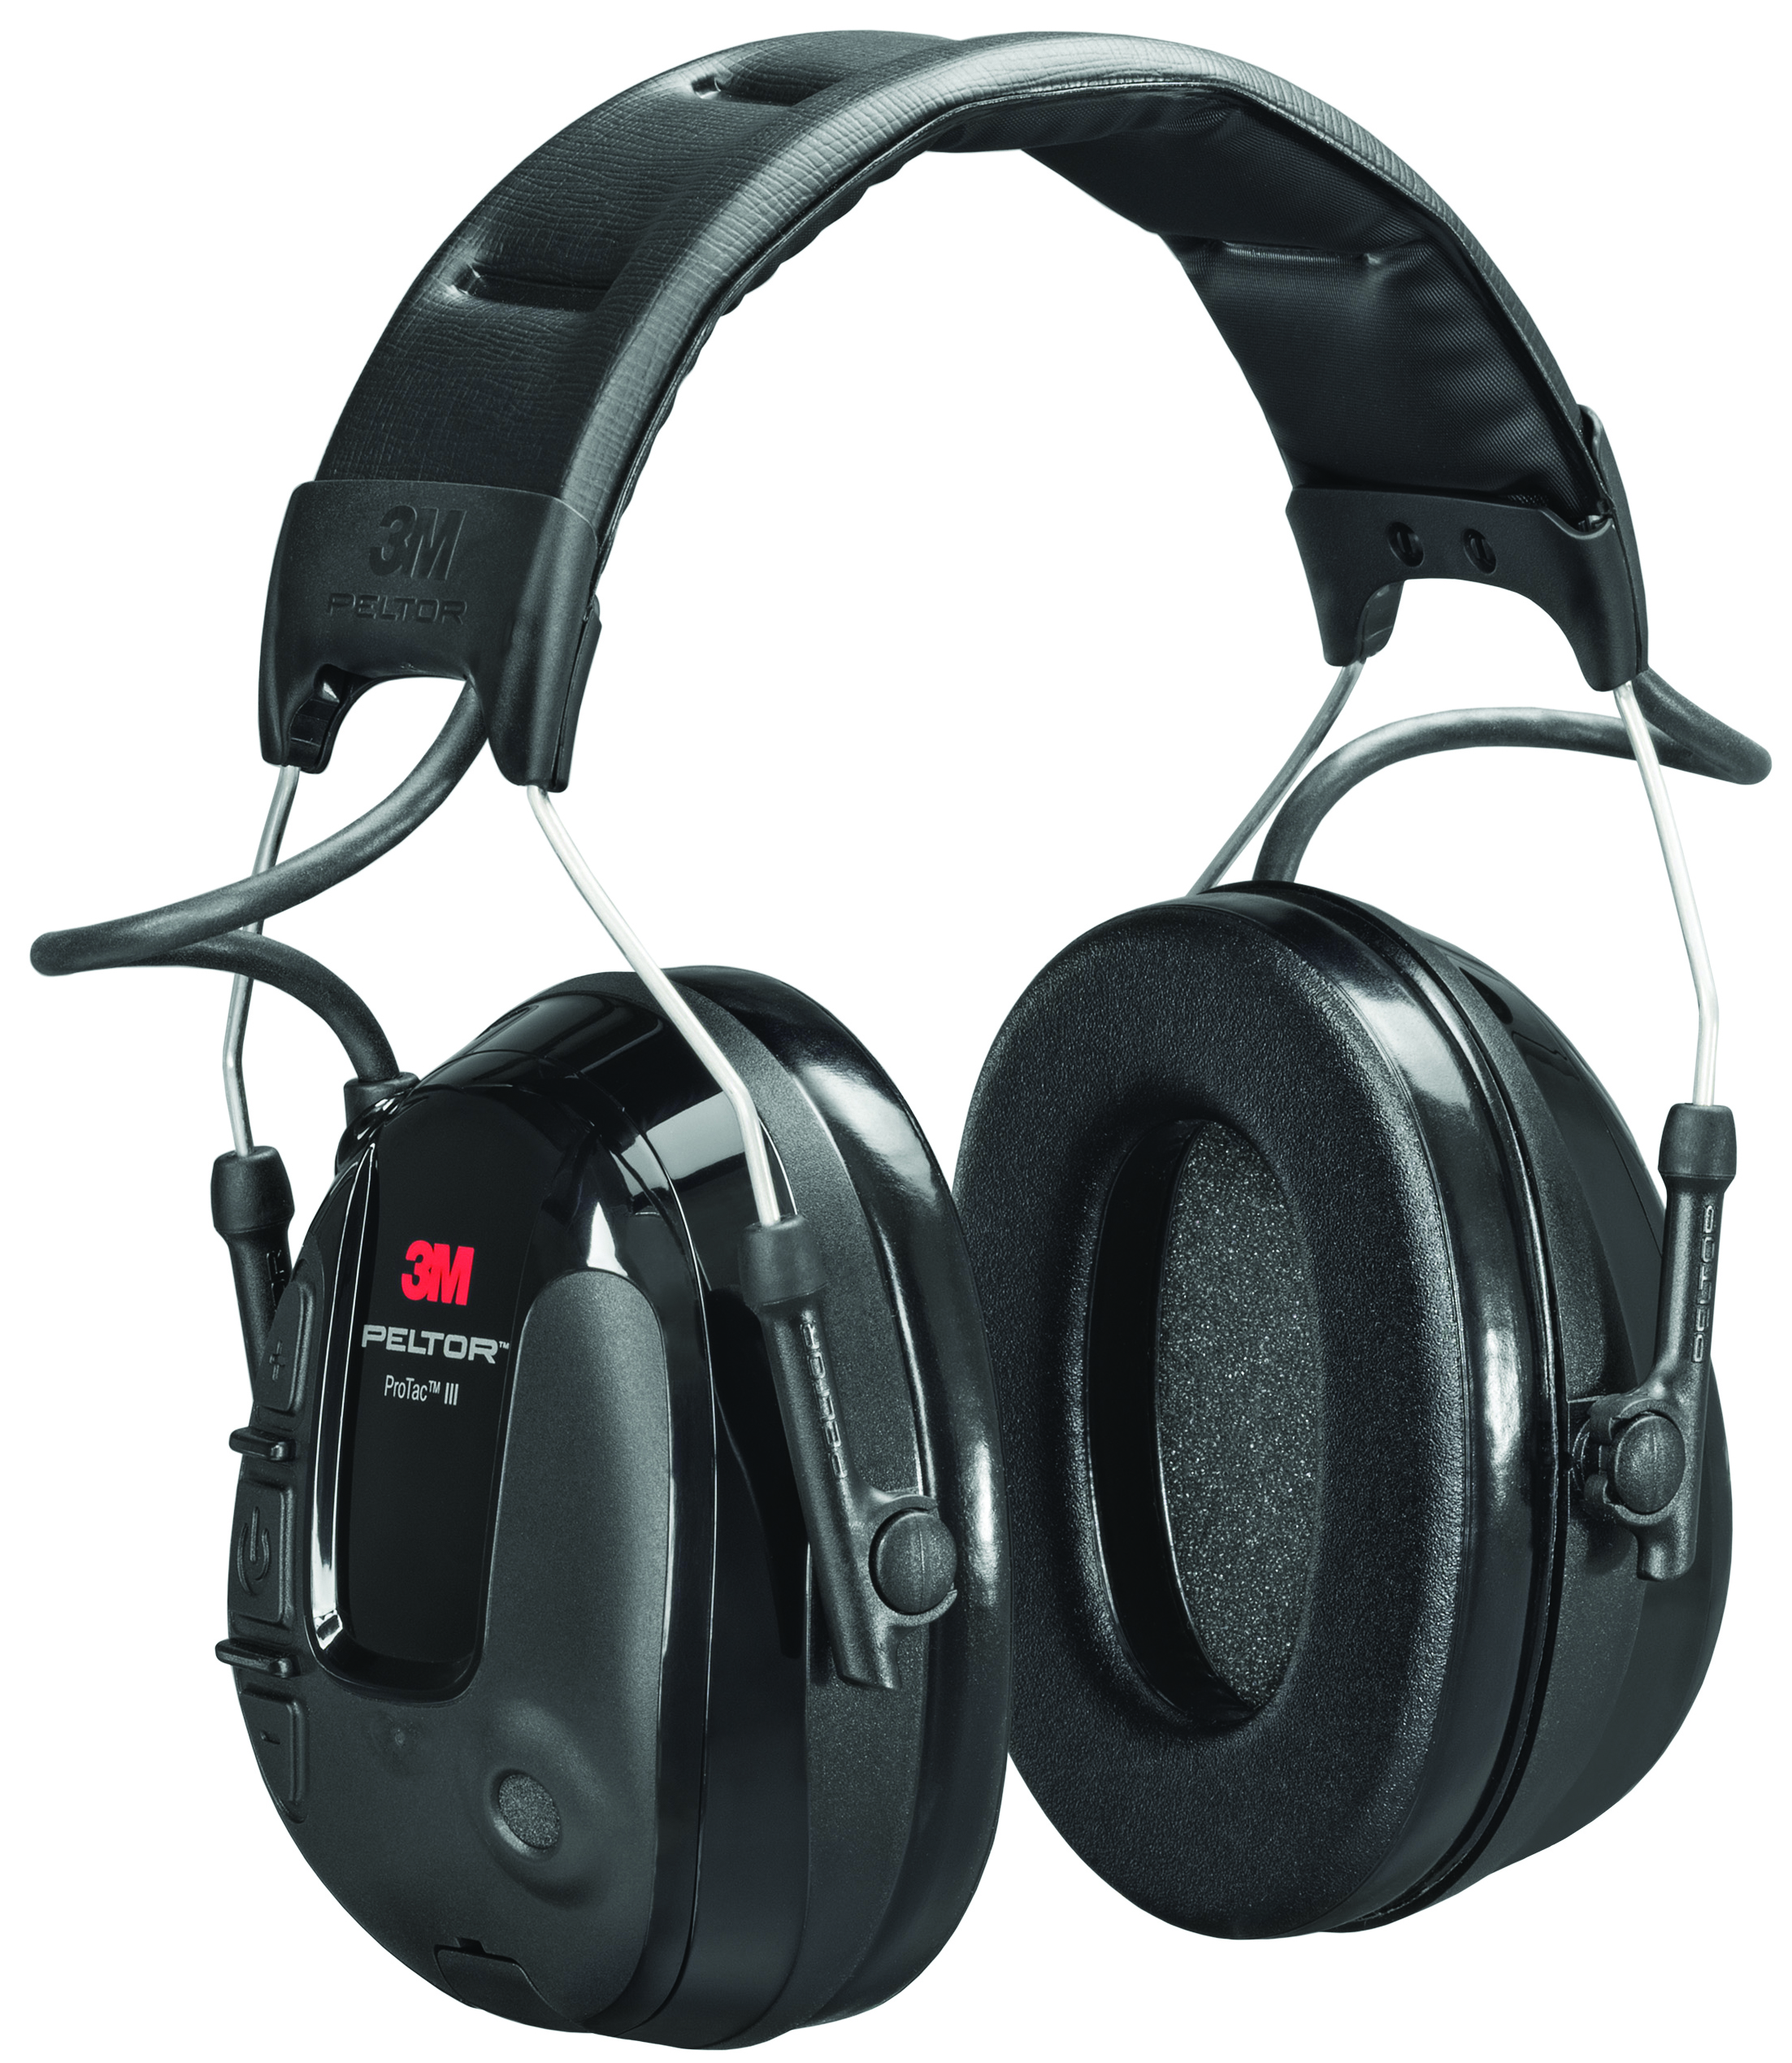 MT13H220P3E - 3M™ Peltor™ ProTac™ III Headset-(NRR)* 19 dB, Slim, Cap/Hard Hat Mounted-----UOM: 1/EA